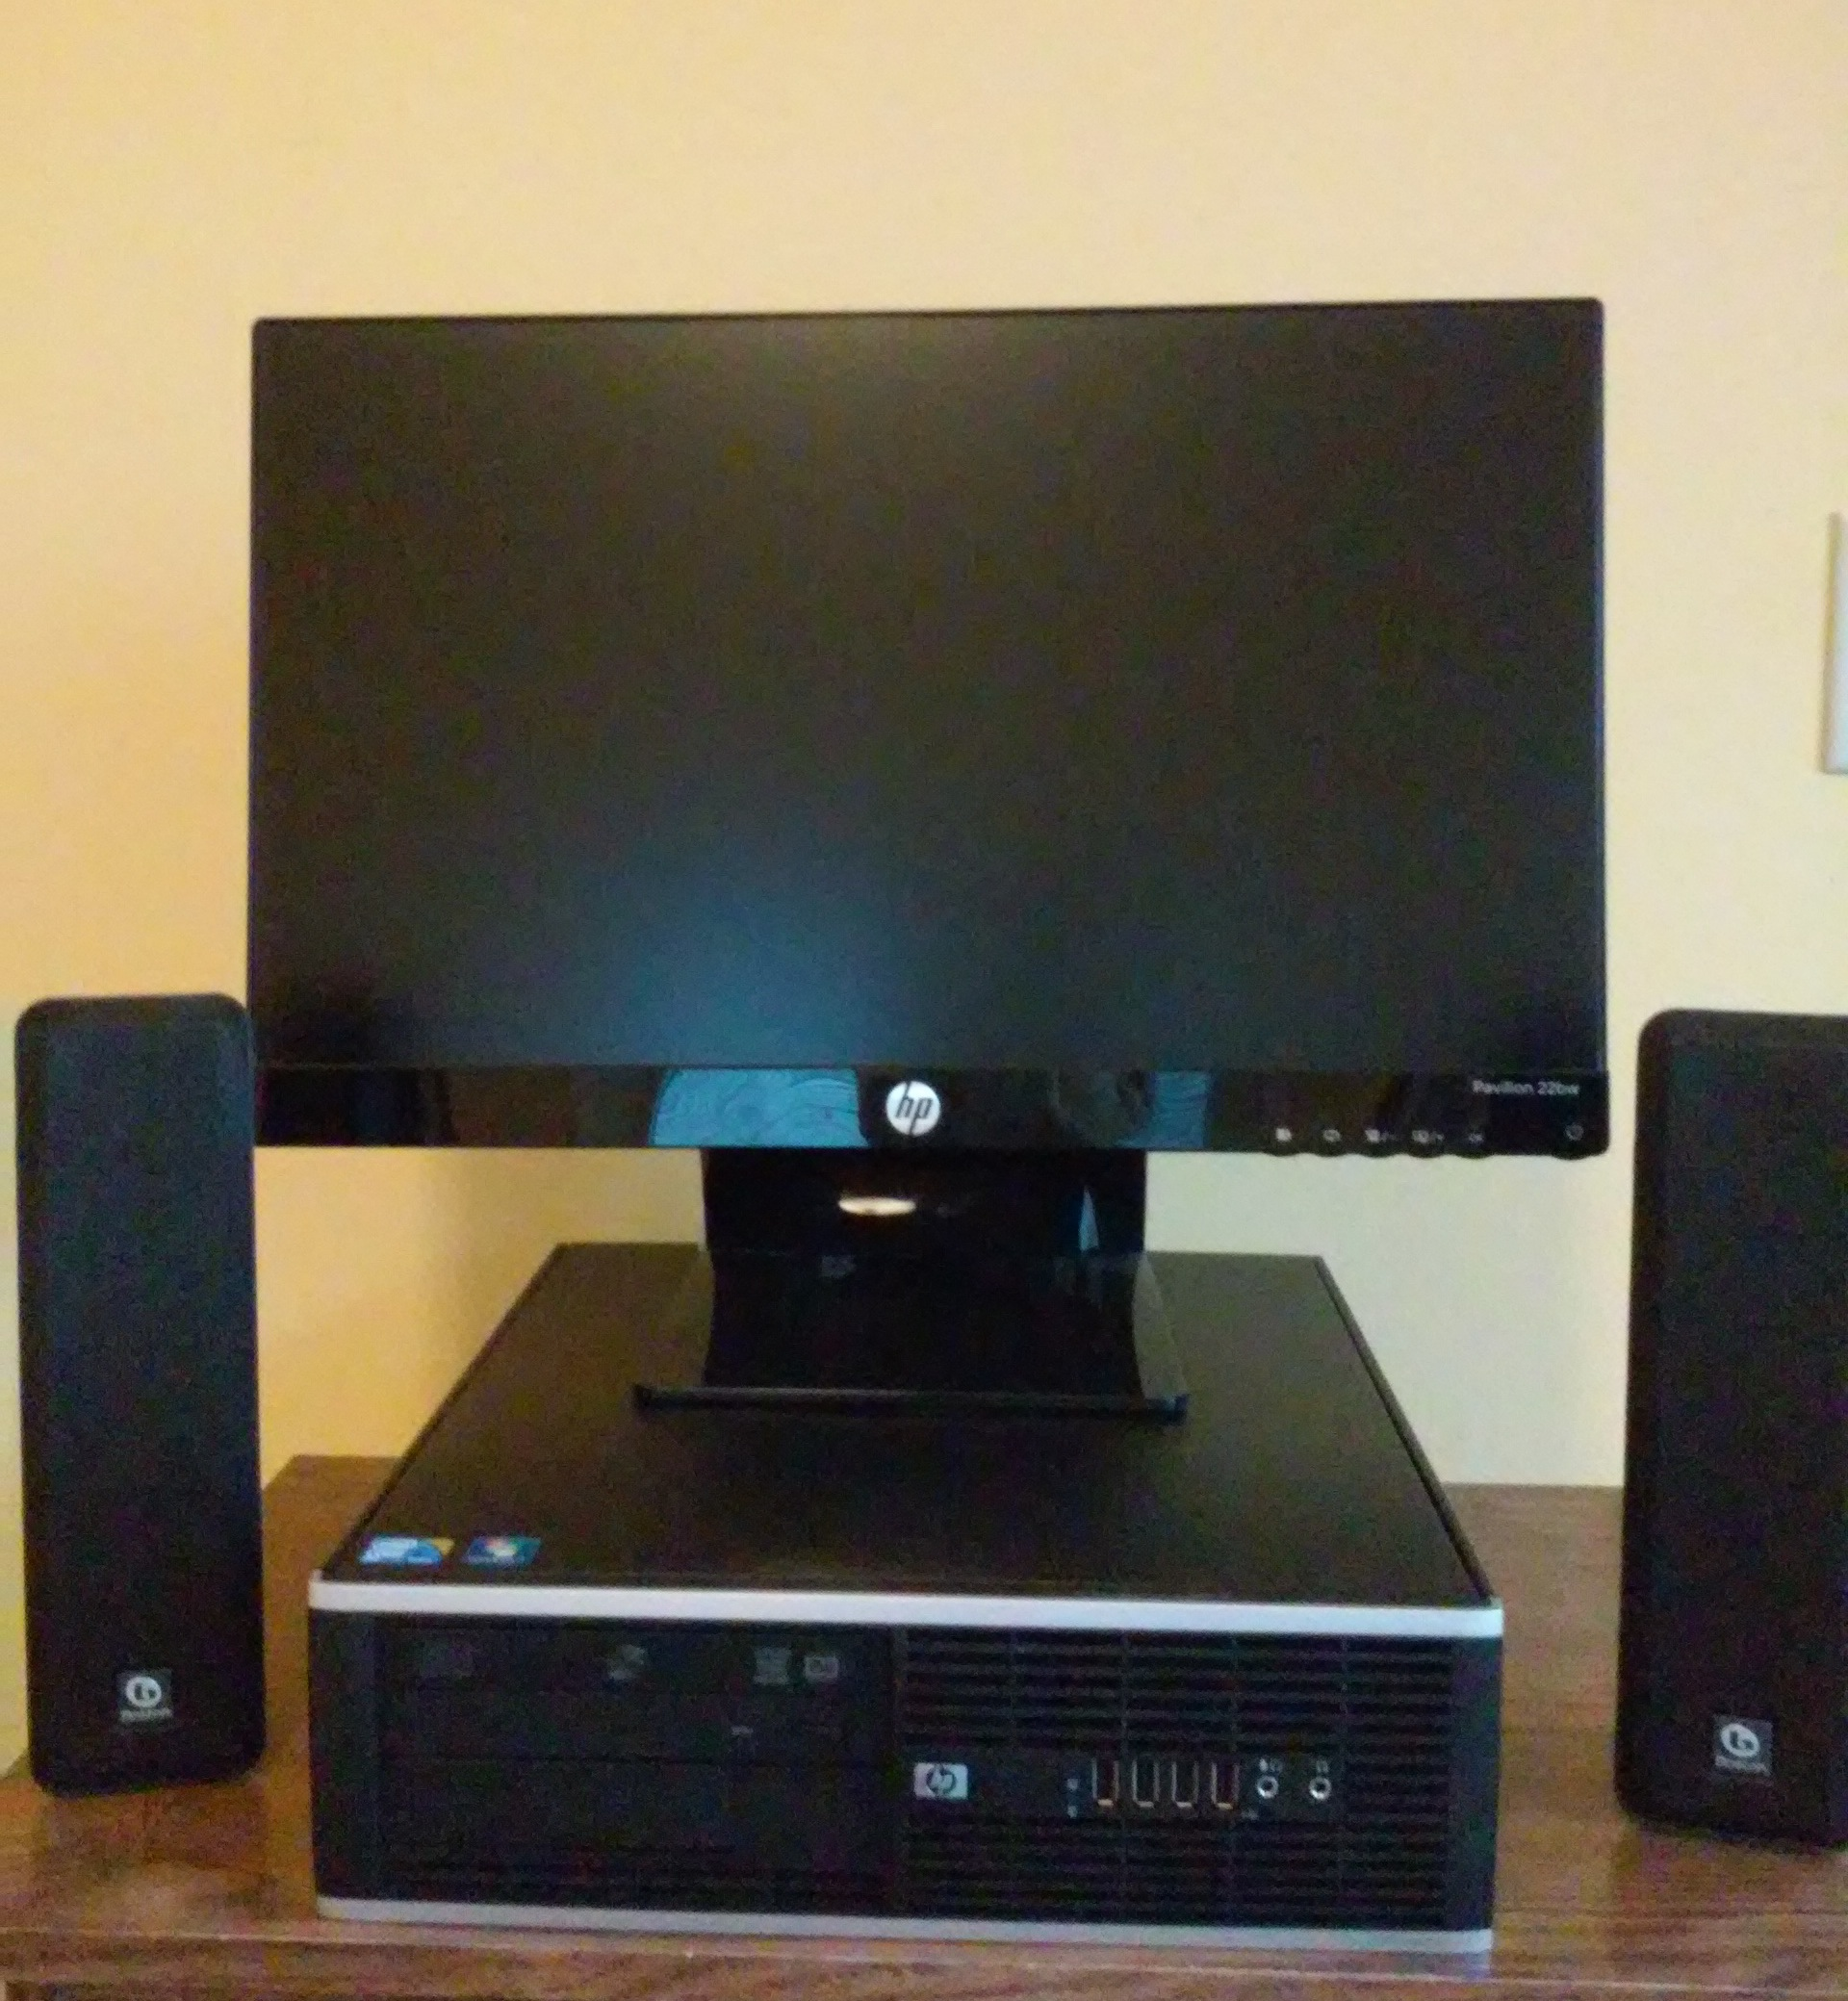 The EZ 8000 - Core 2 Duo E8400 - Affordable CustoMac Media Center